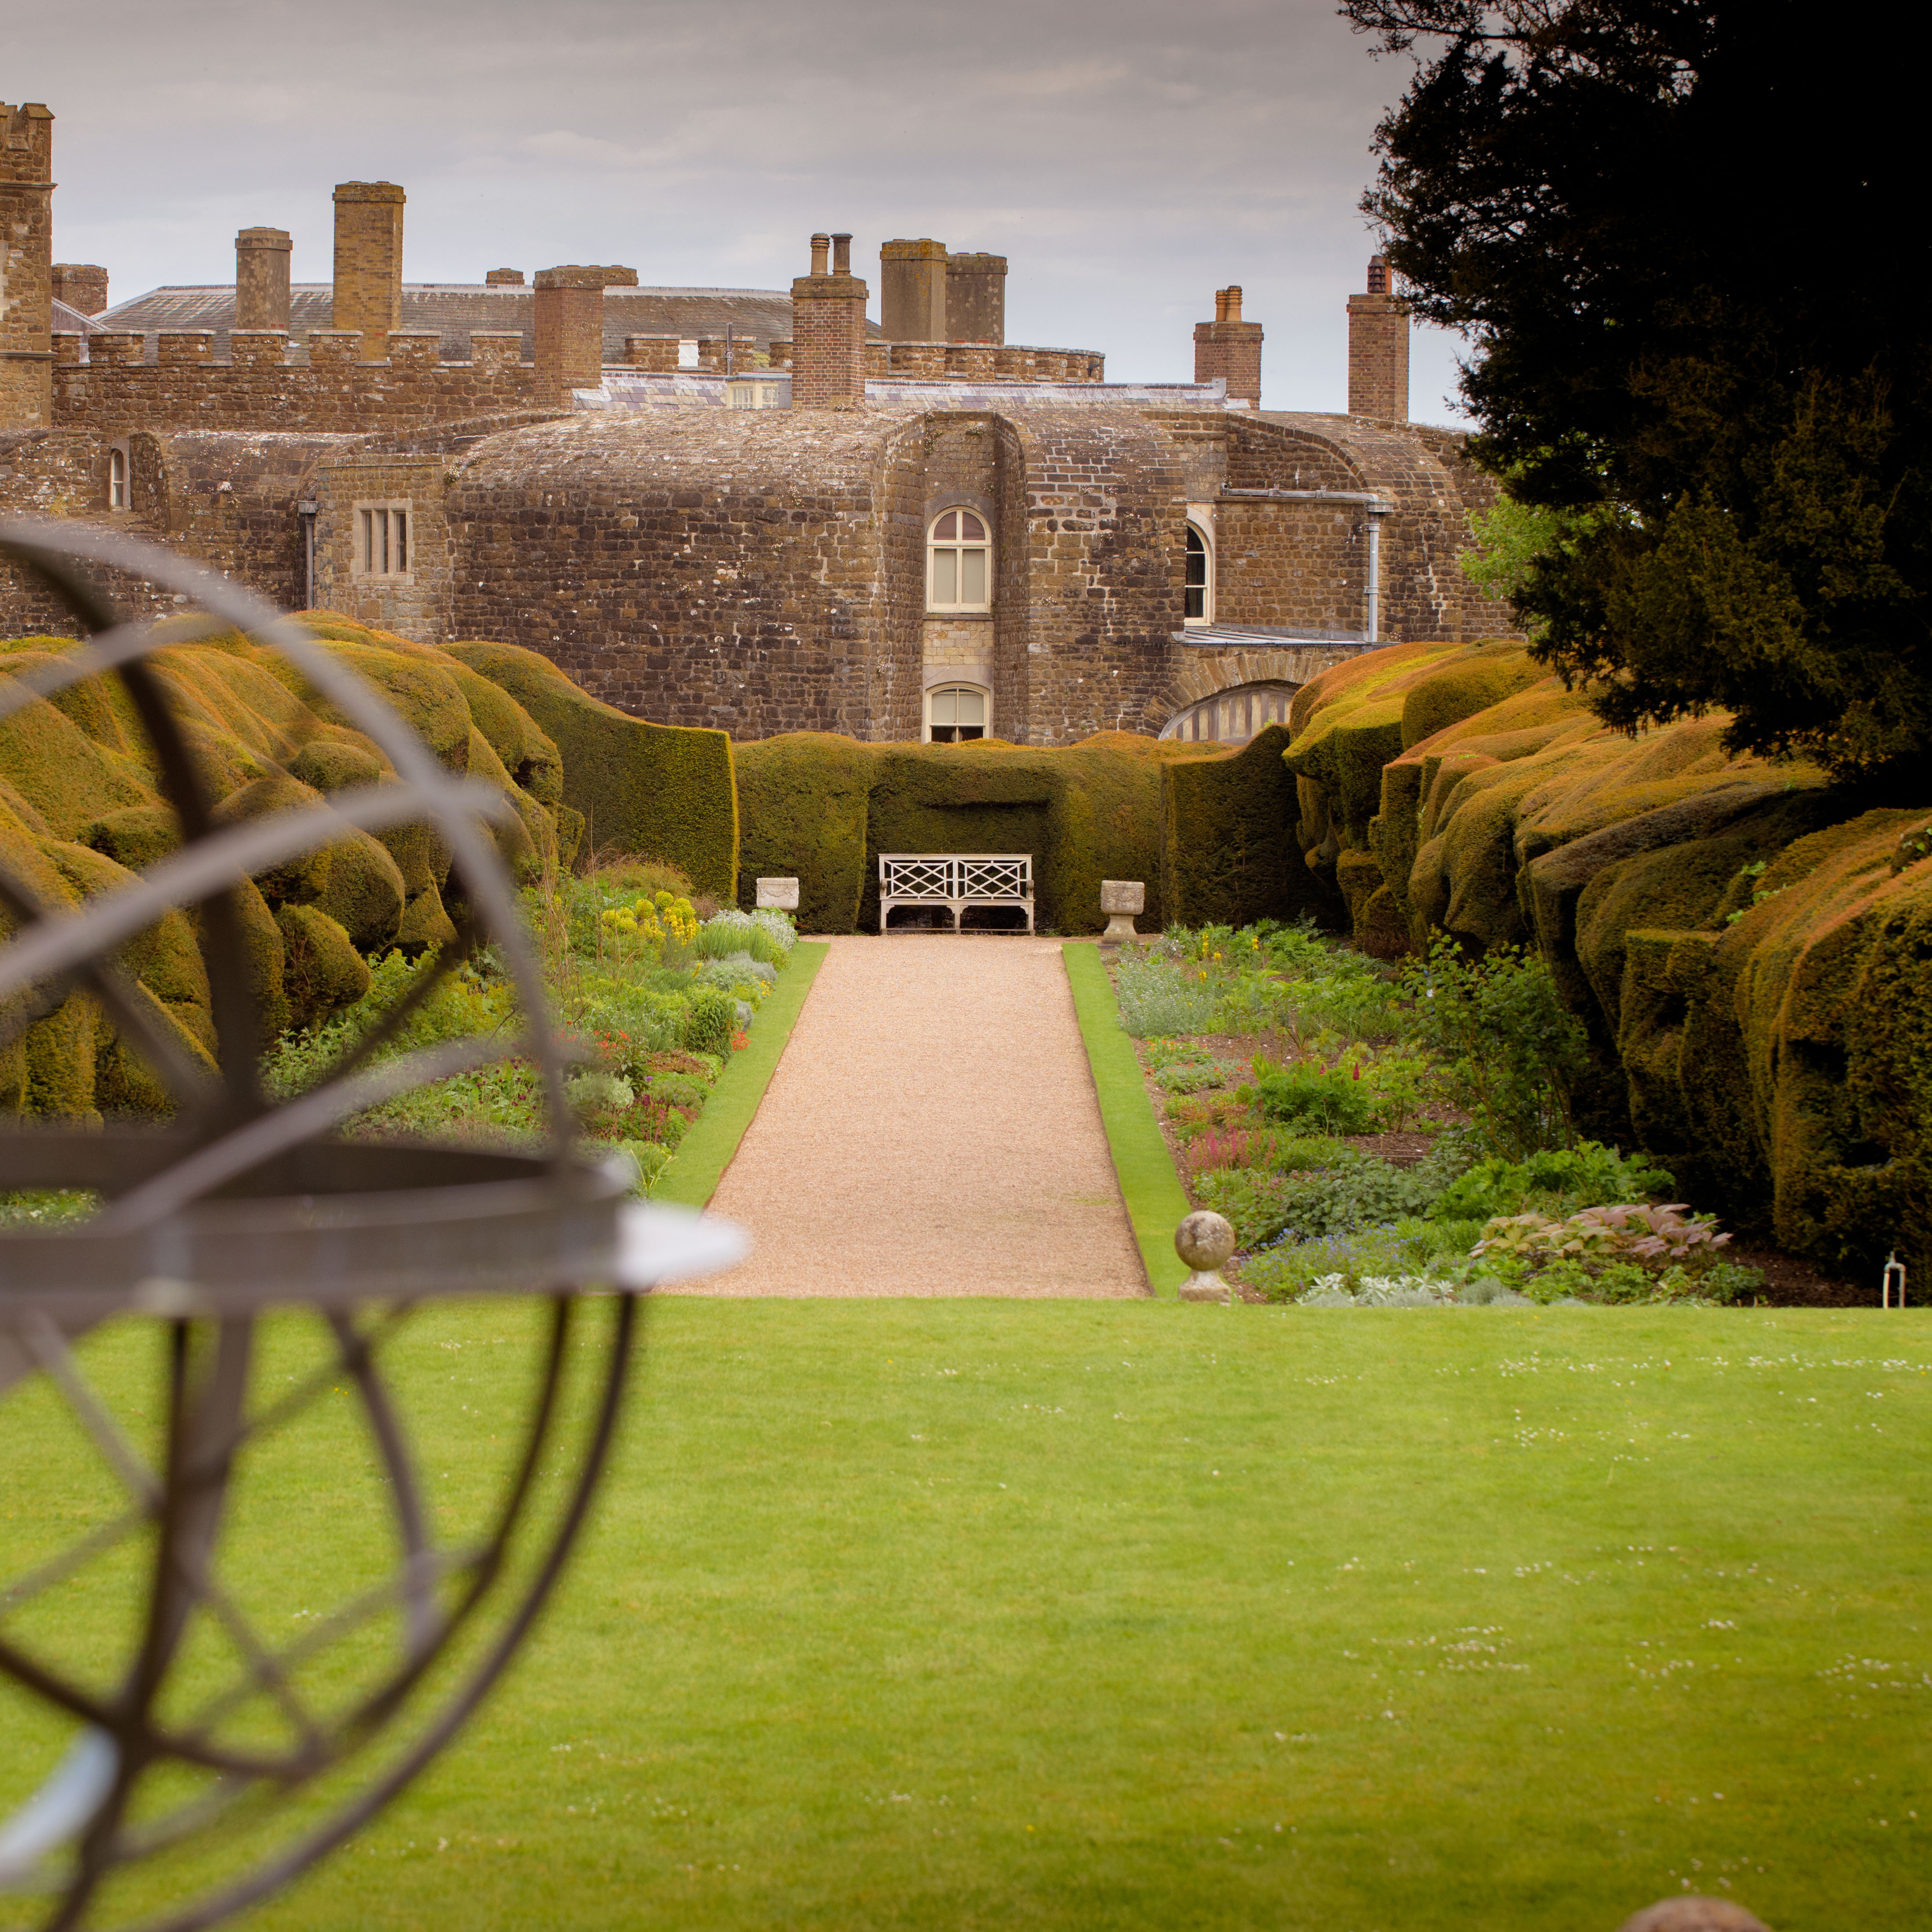 Walmer Castle and Gardens, English Heritage, Walmer, Deal, Kent